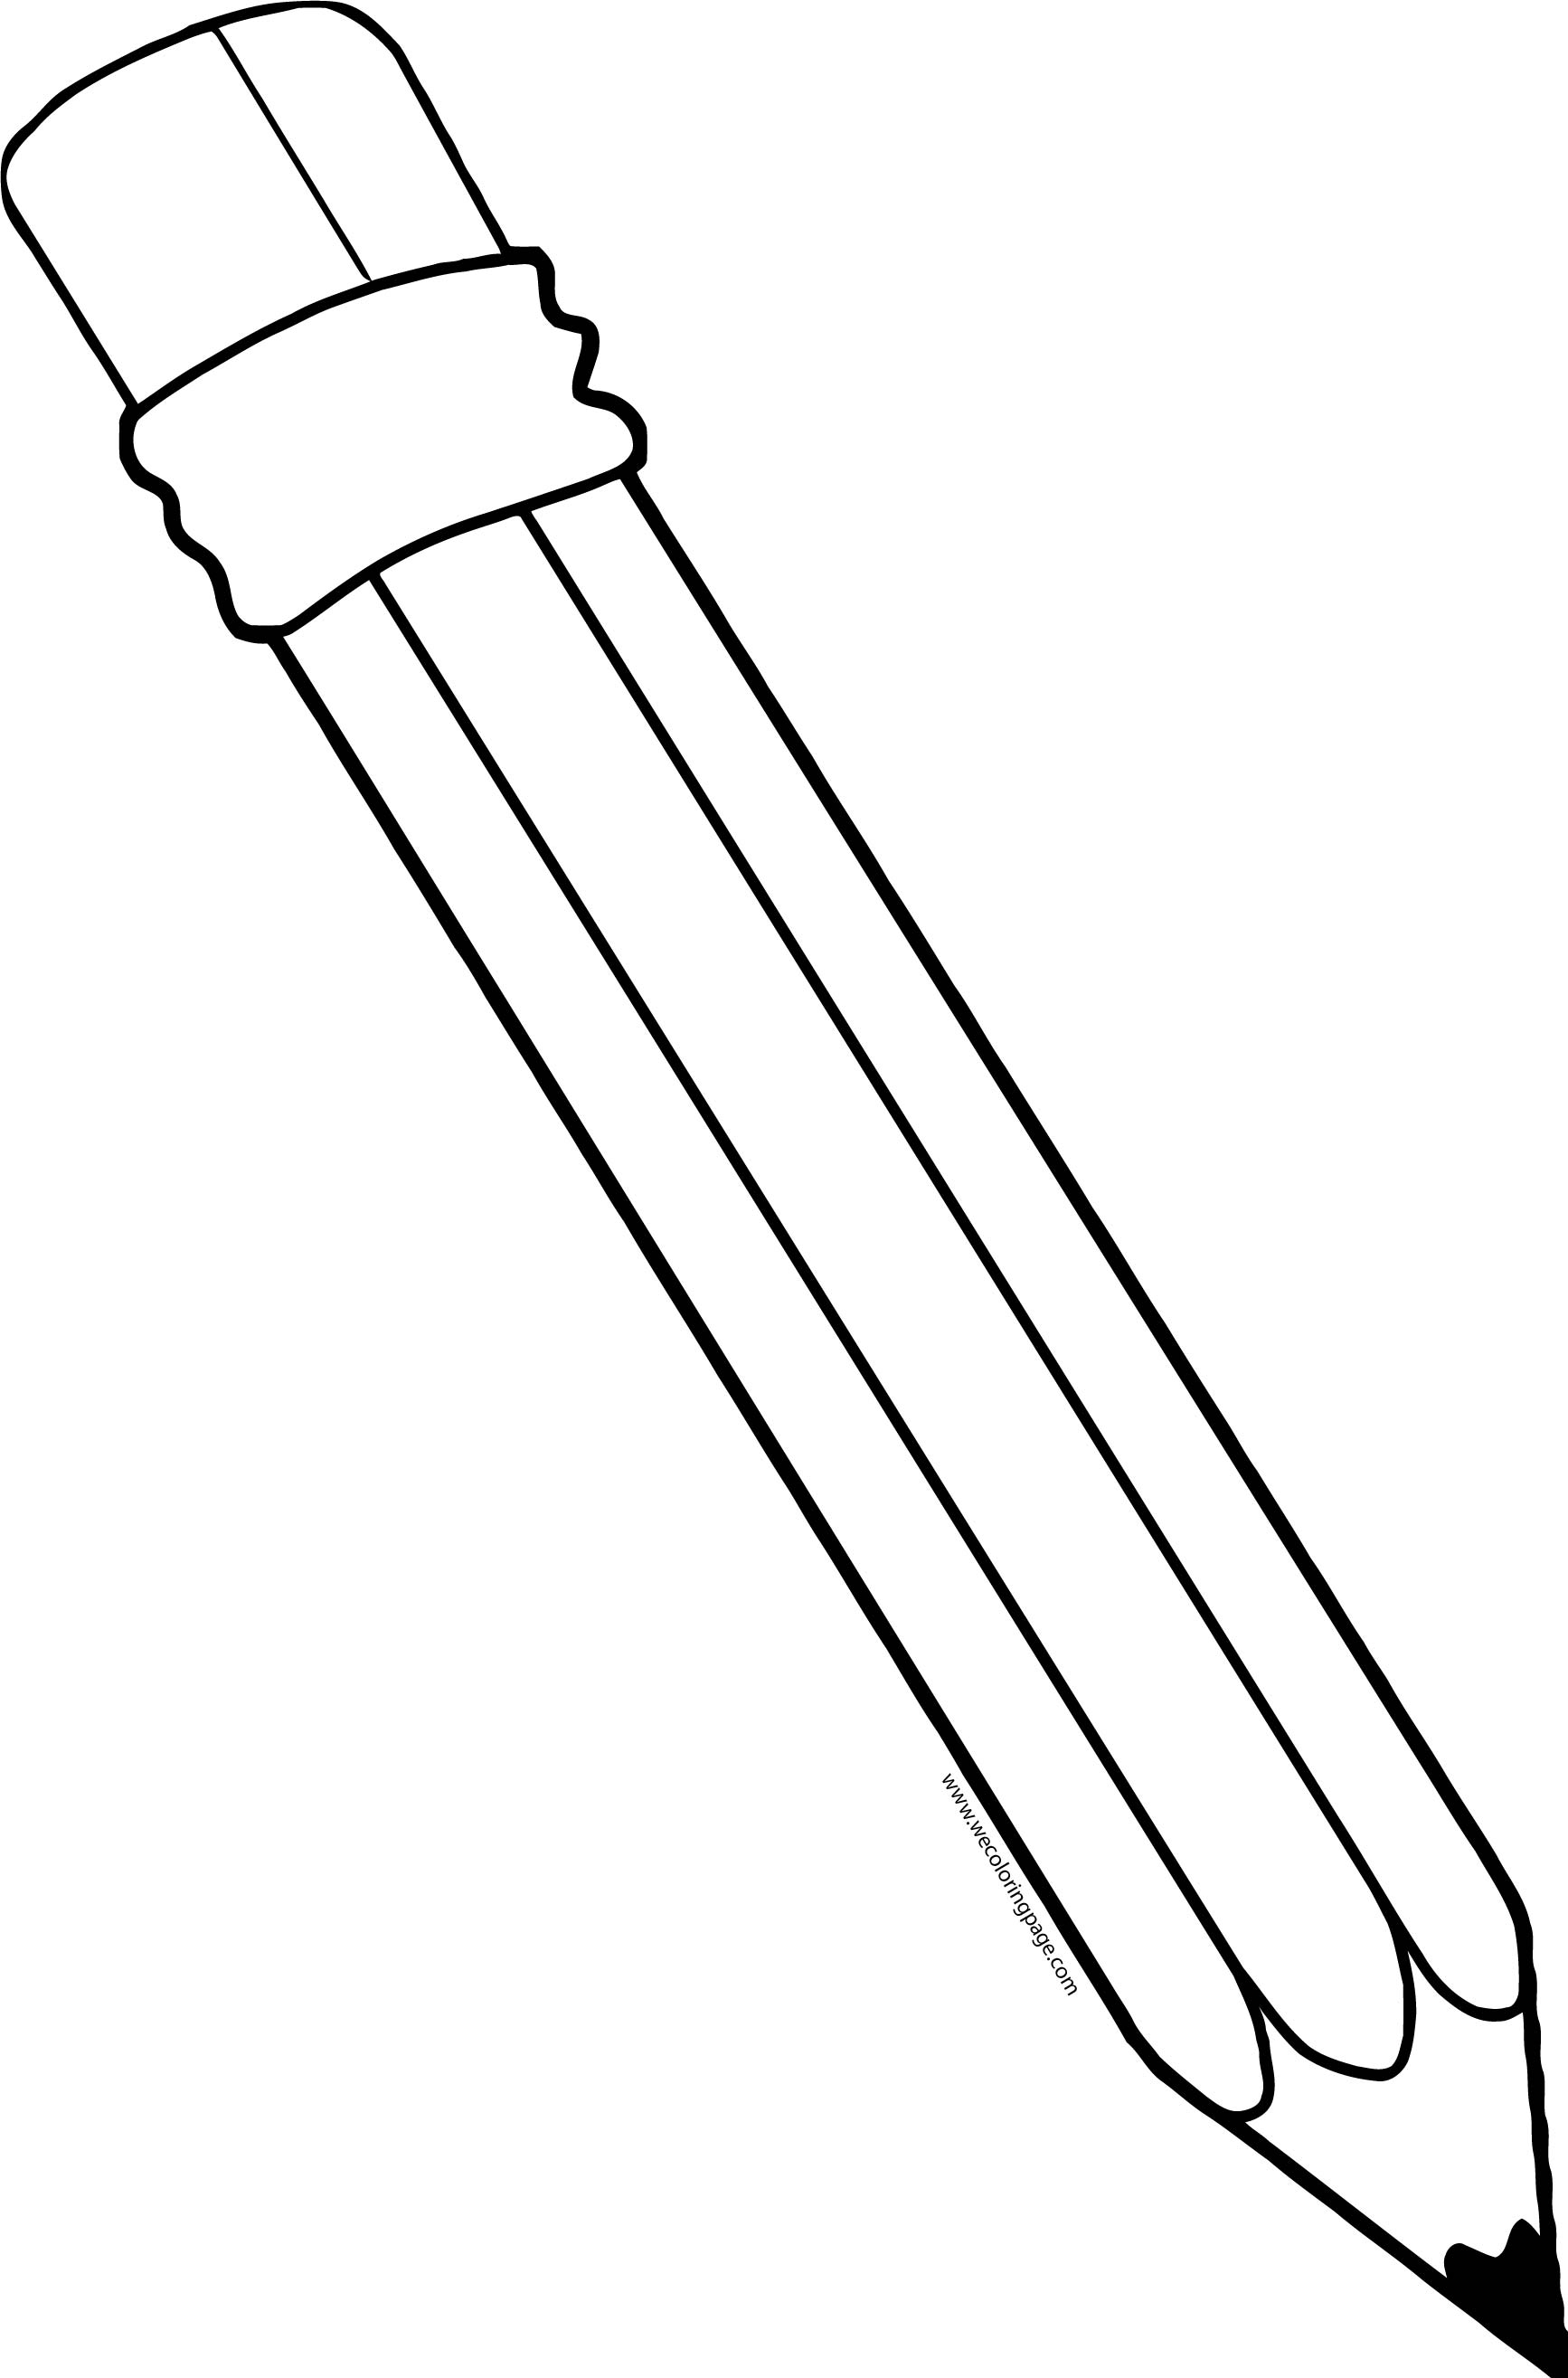 Bold Pen We Coloring Page